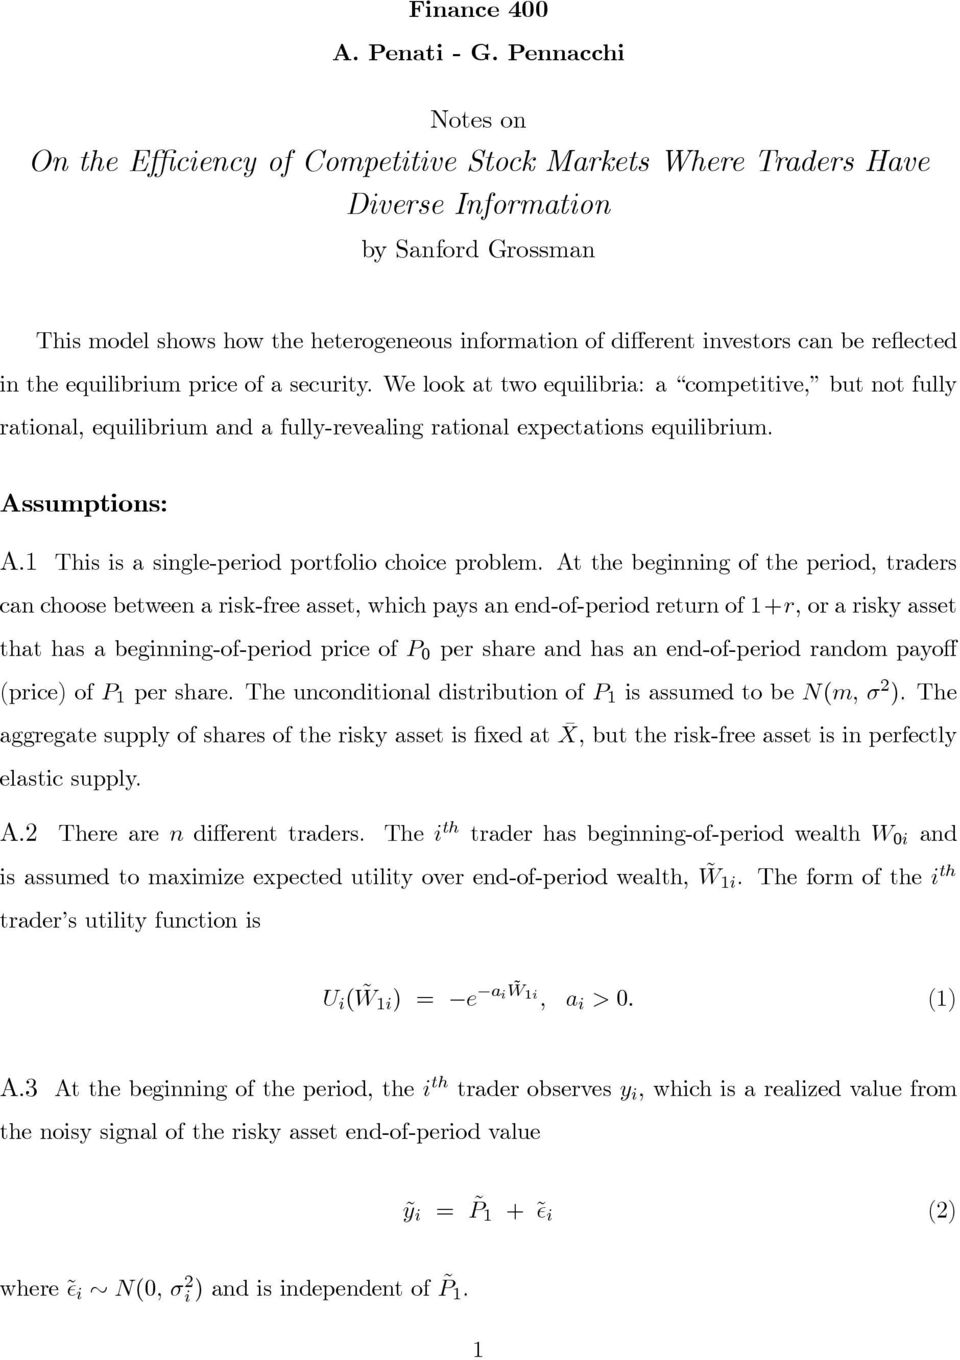 can be reflected in the equilibrium price of a security. We look at two equilibria: a competitive, but not fully rational, equilibrium and a fully-revealing rational expectations equilibrium.